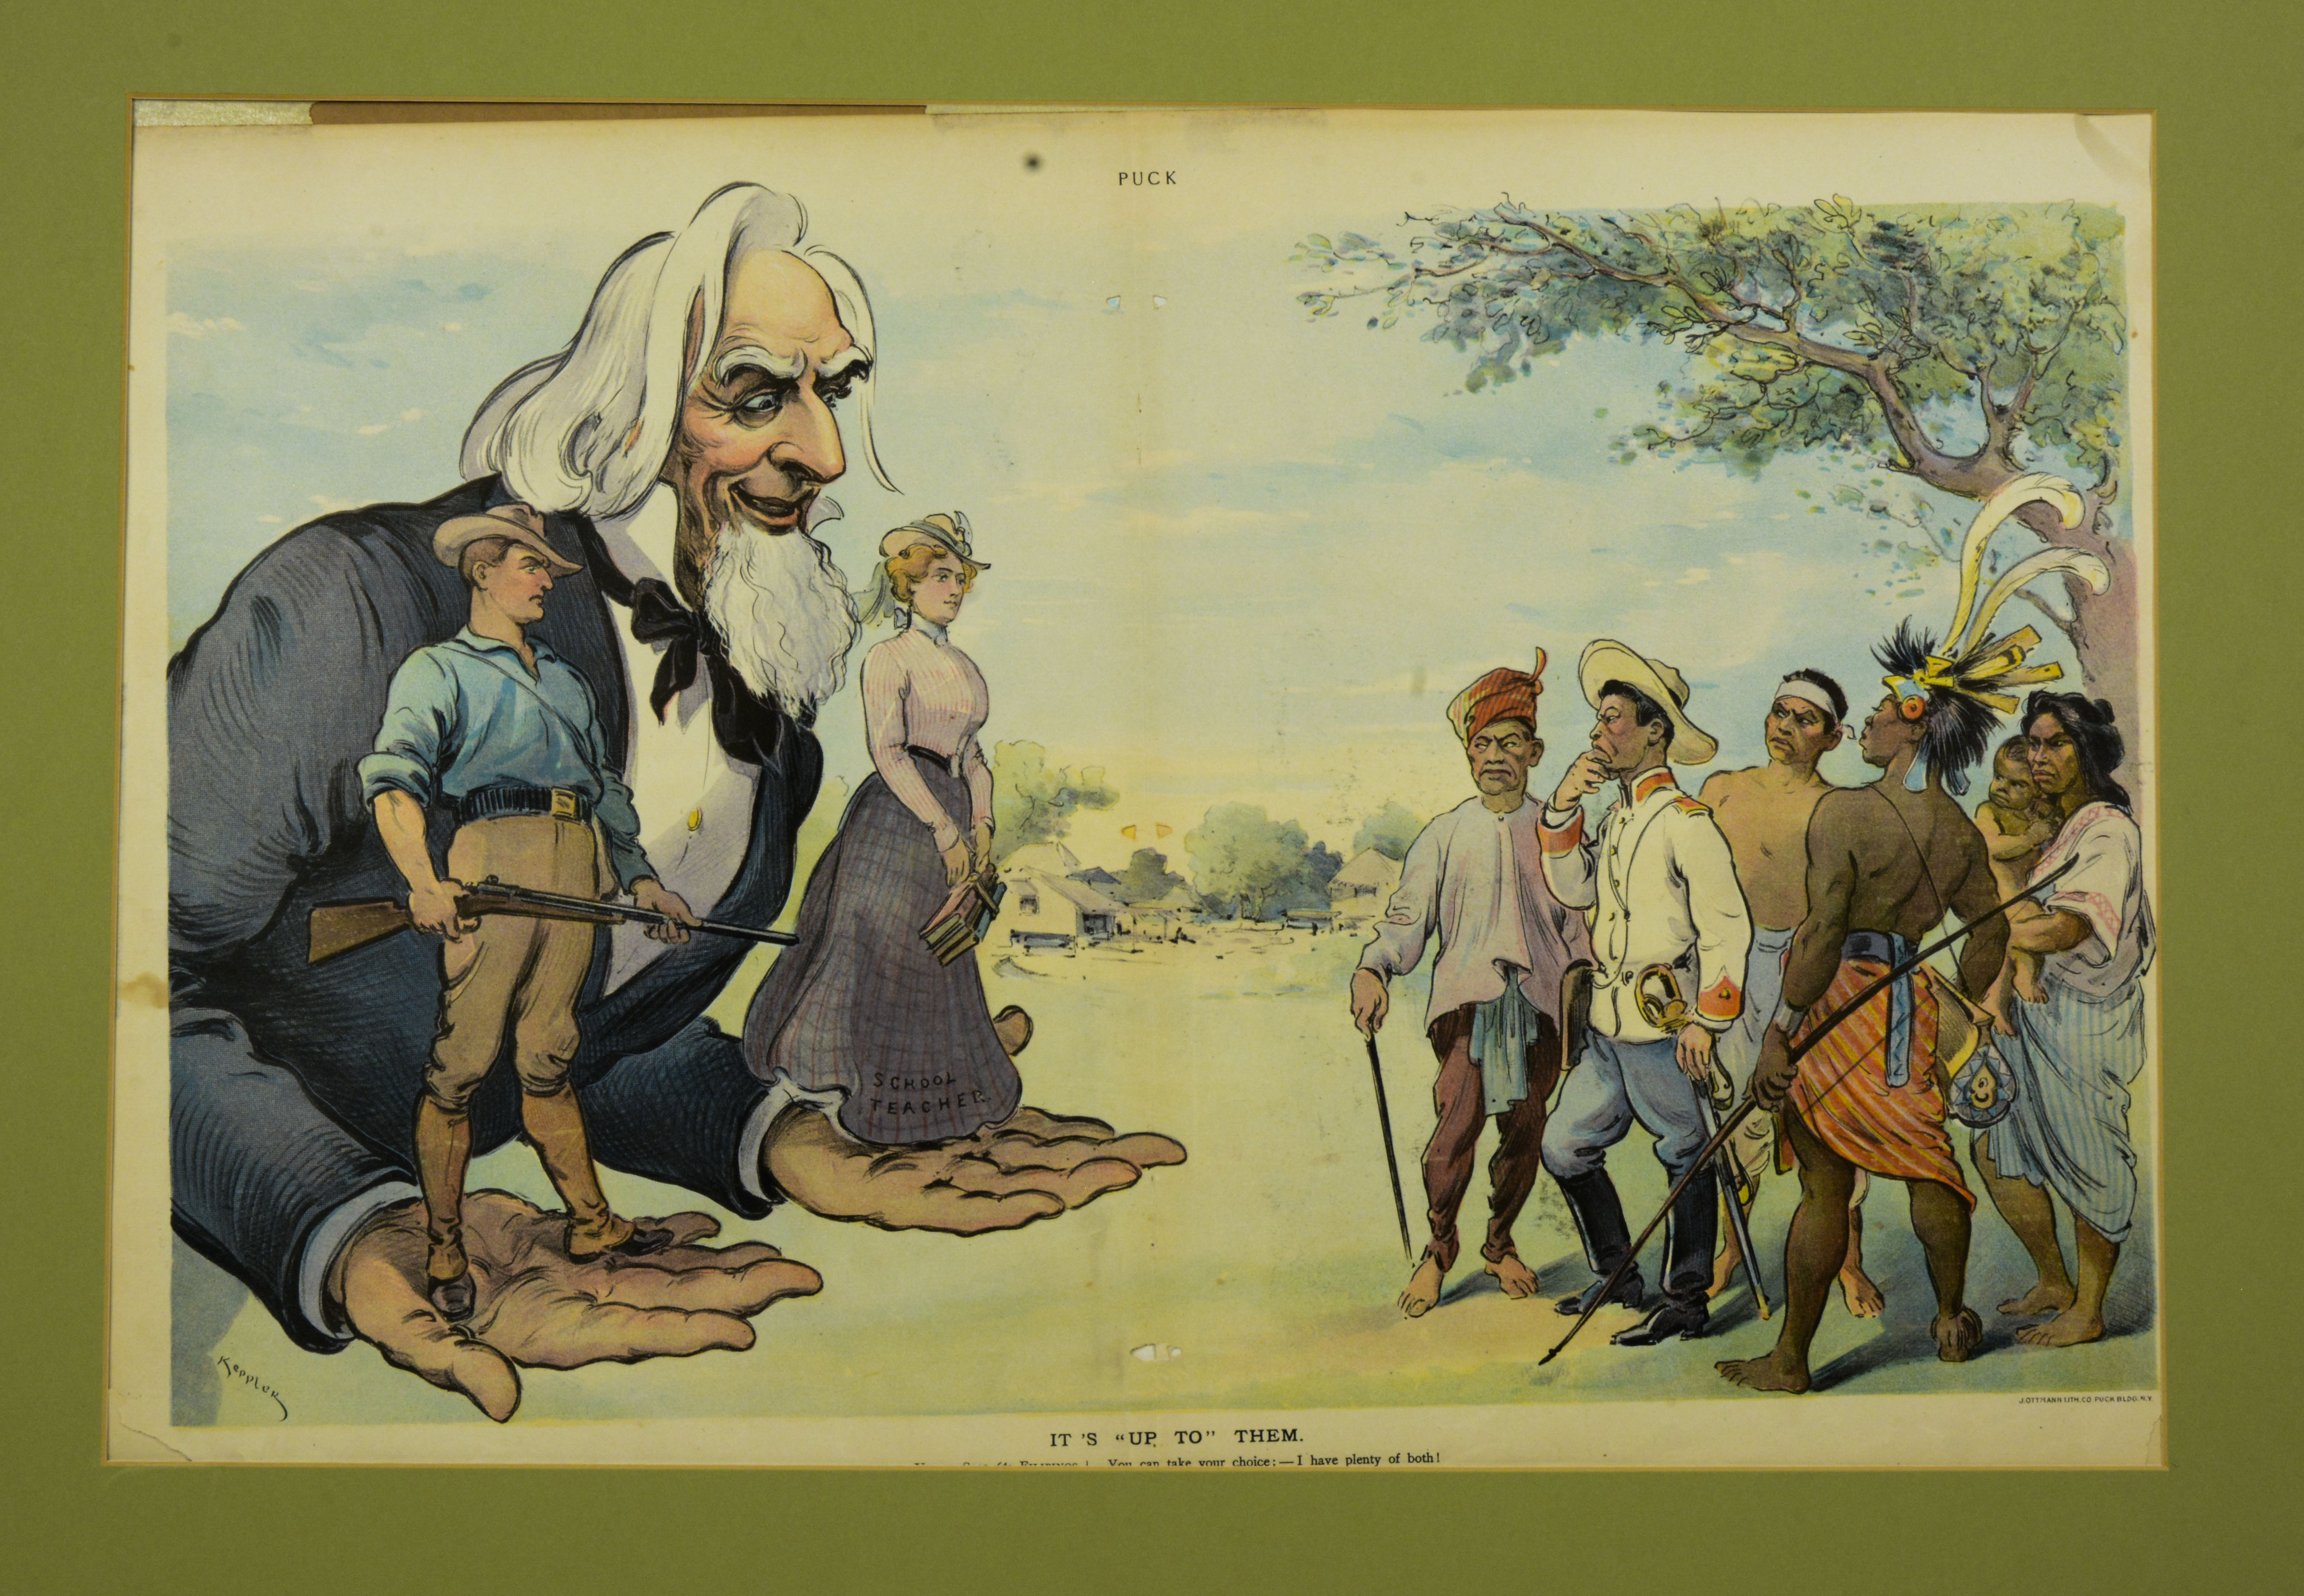 """Illustration owned by Paulla Santos.  Acquired in June 2017 from Odana Antiques and Fine Arts, Madison, WI  Bought while antiquing.  Illustration of Uncle Sam, white female teacher, white male soldier, Filipinos.  Language in English  Notes from Sarah Carlson, in discussion with Santos: Found in same antique store [as previous], different seller. Pulls Keppler print from New York, around 1898. Uncle Sam holding 2 options, offering teaches (civilizing, learning westerners) or man with a gun. Filipinos on other with reacting, representing different regions: Mindanao, Manila/Tagalog, lowlands, Cordilleras, Northerners. Walking through friend saw it, pointed it out, got excited, drew me. I study US/Philippine relations. Thought it was too expensive, negotiated through text to purchase for $150. Connections at UW-Madison helped make that connection. Kept wrapped in a closet away from my cat-hoping to frame it. Hung in apartment away from light. Studying transnational marriage between Philippines and US. Parents had a transnational arranged marriage by maternal group. Grandmother (Ran away at 16 to get married against parents wishes. Never legally married but had 8 children. Eventually grandmother left went to Singapore, worked in hotel, met new husband.) had 4 sons, 4 daughters, 2 daughters married US men, 3rd daughter married an American too but wasn't arranged. Only learned parents marriage was arranged until recently. Wanted to know more about imperialism, US/Philippines relationship, penpals/""""mail order"""", US servicemen/entertainment workers, bride schools. How the US sponsored bride schools in the USA haven't found much written about it. Learning Tagalog - mom's first language. Last name is Santos, but pronounced English Way, dad is American. Grandfather's(adoptive parents are Filipino, 1930's huge anti-Filipino sentiment, how did they adopt a white boy? Family lore of kidnapping.   Any views, findings, conclusions, or recommendations expressed in this story do not n"""